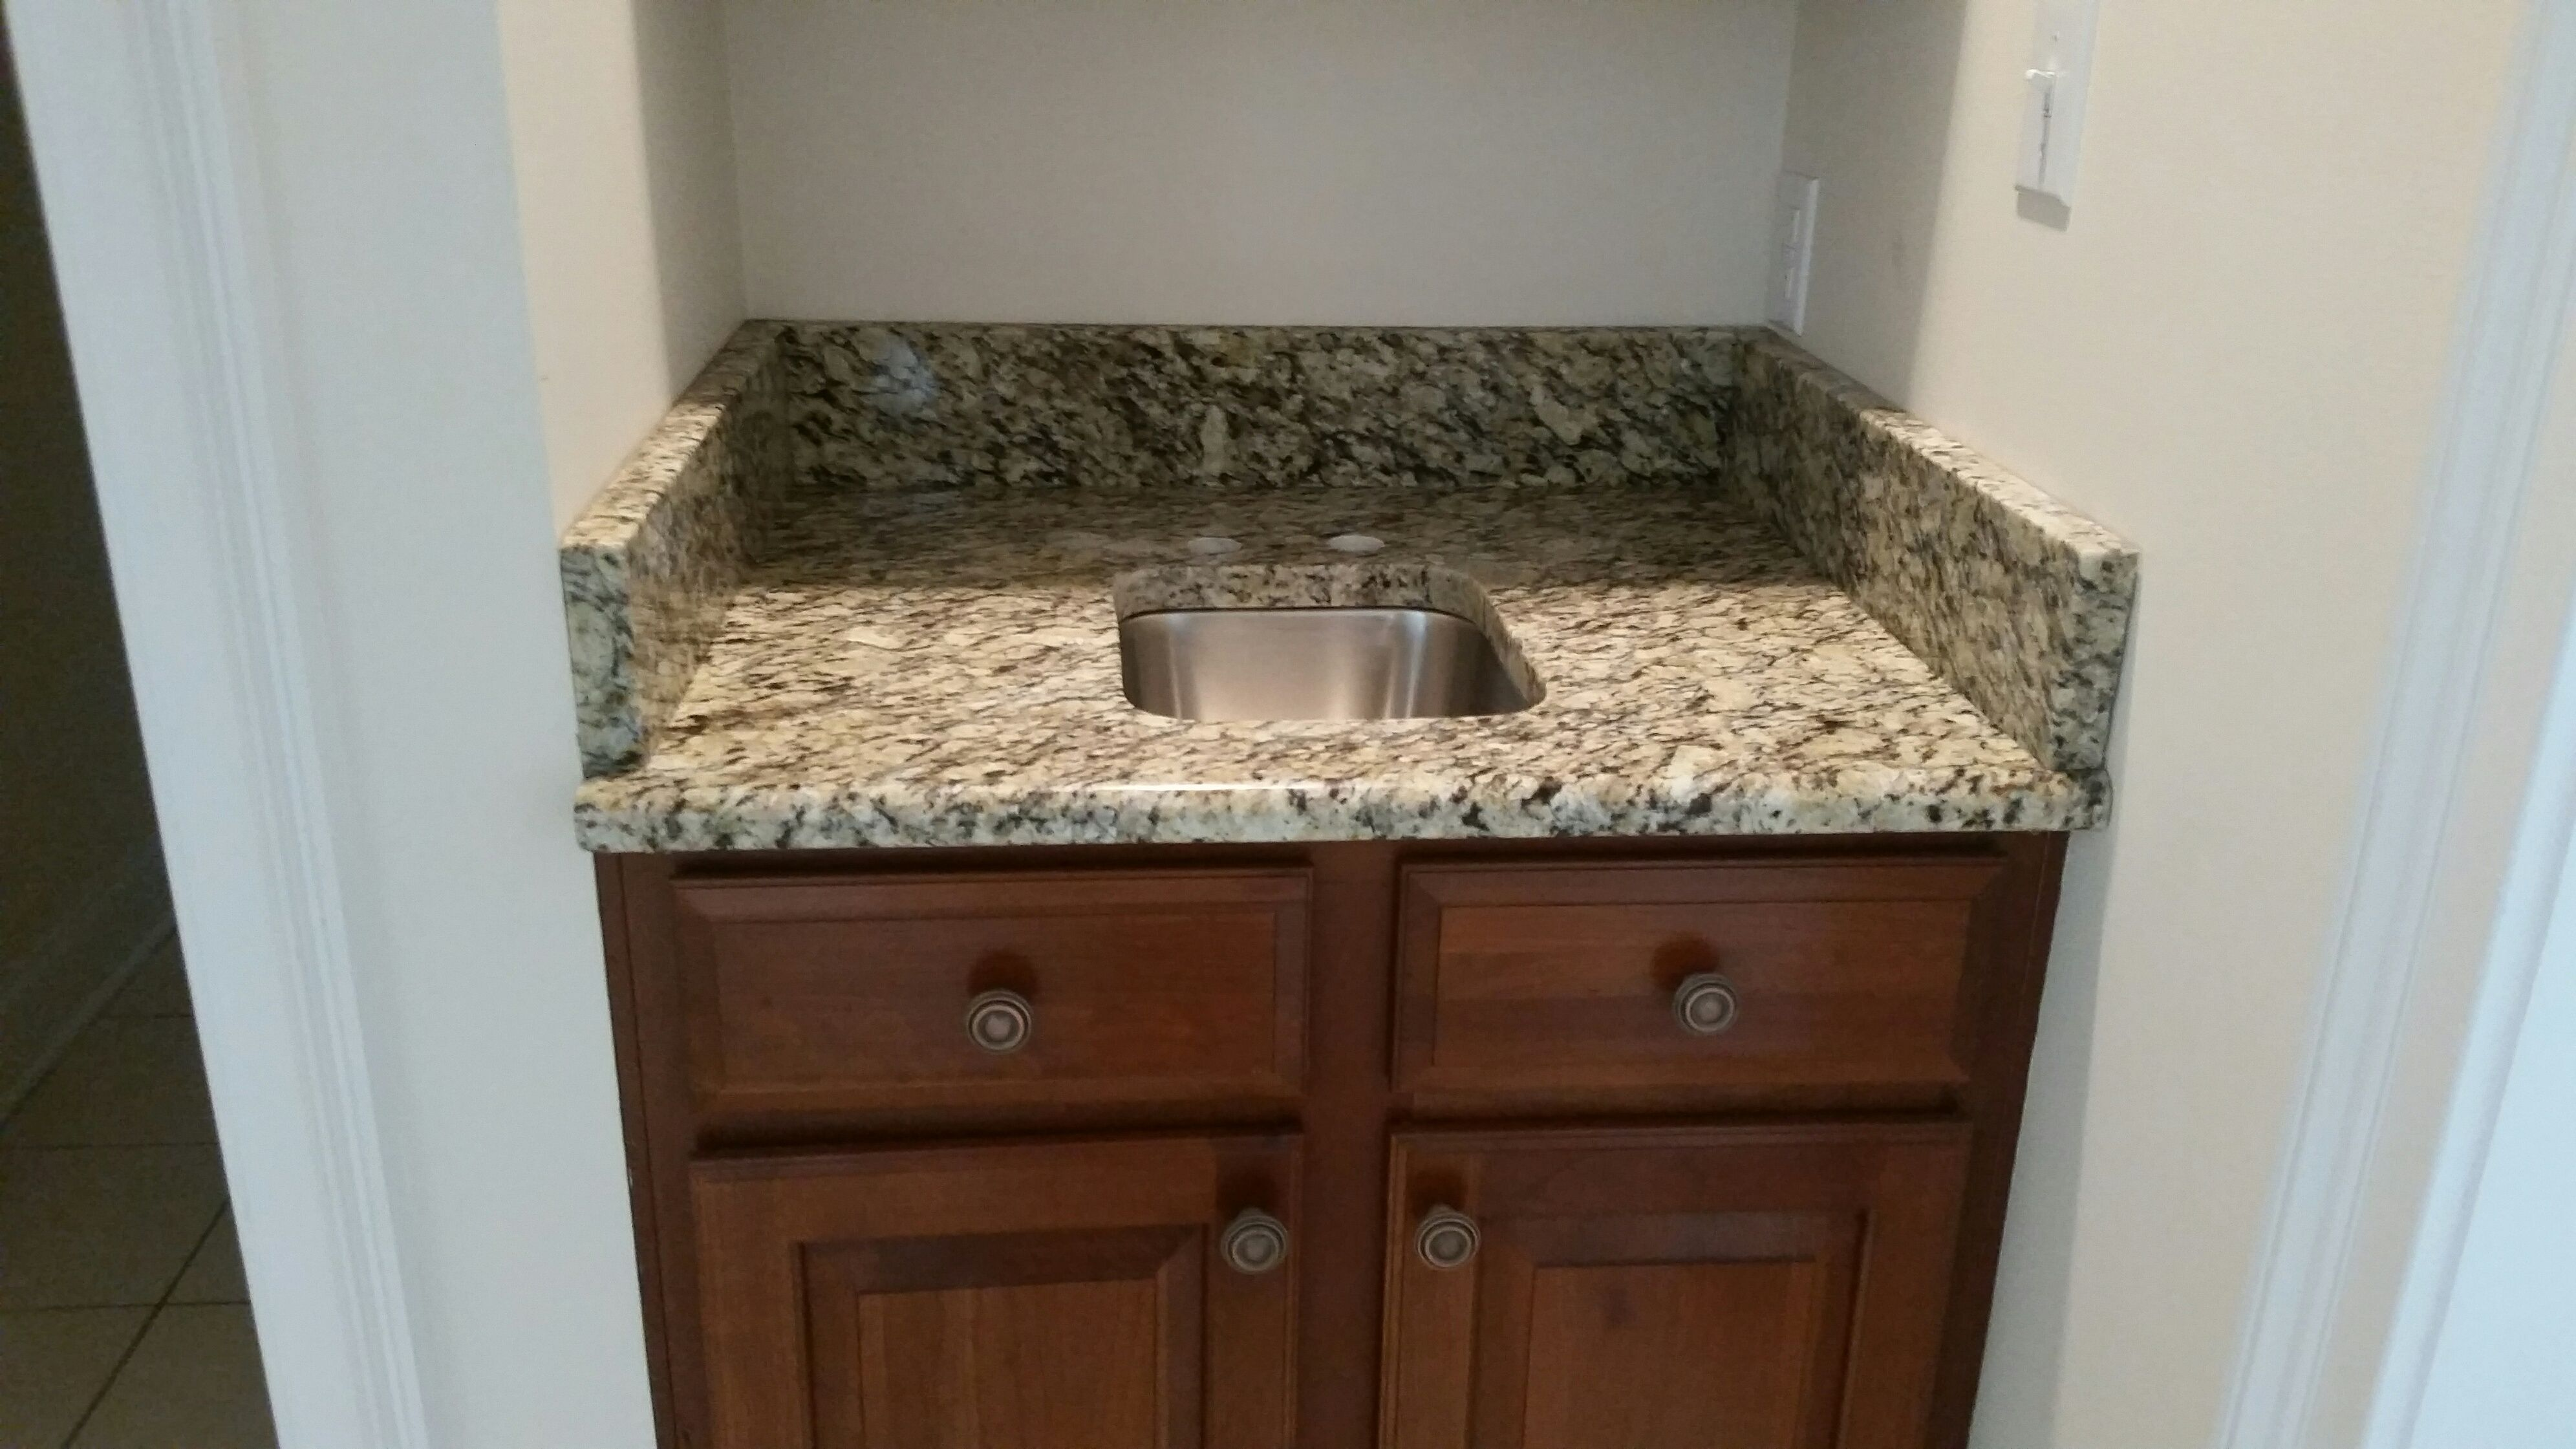 st cecilia granite kitchen countertop and bathroom vanity install for the farhat family knoxvilles